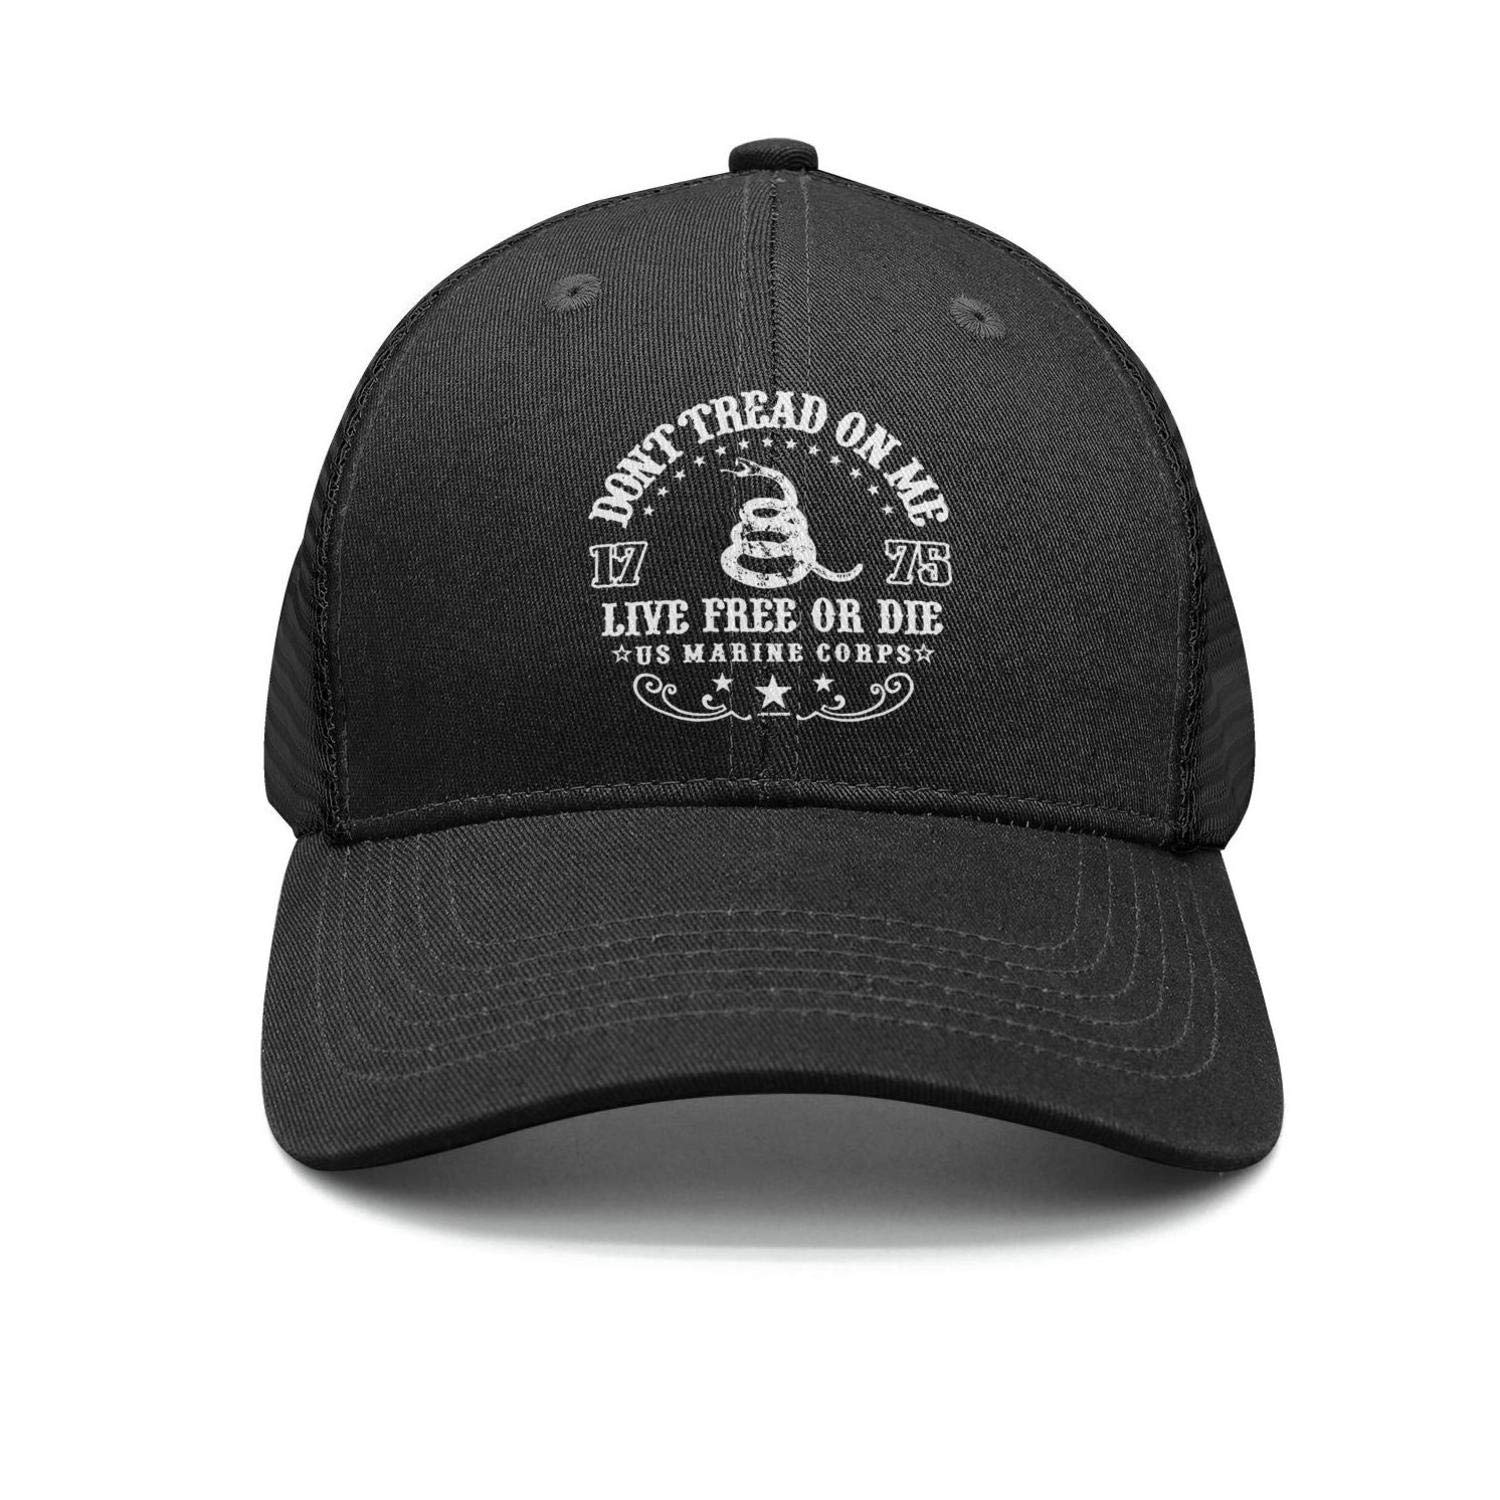 5ac5e5ef Adult Adjustable Baseball Cap Dont Tread On Me Classic Polo Style Baseball  Cap at Amazon Men's Clothing store: